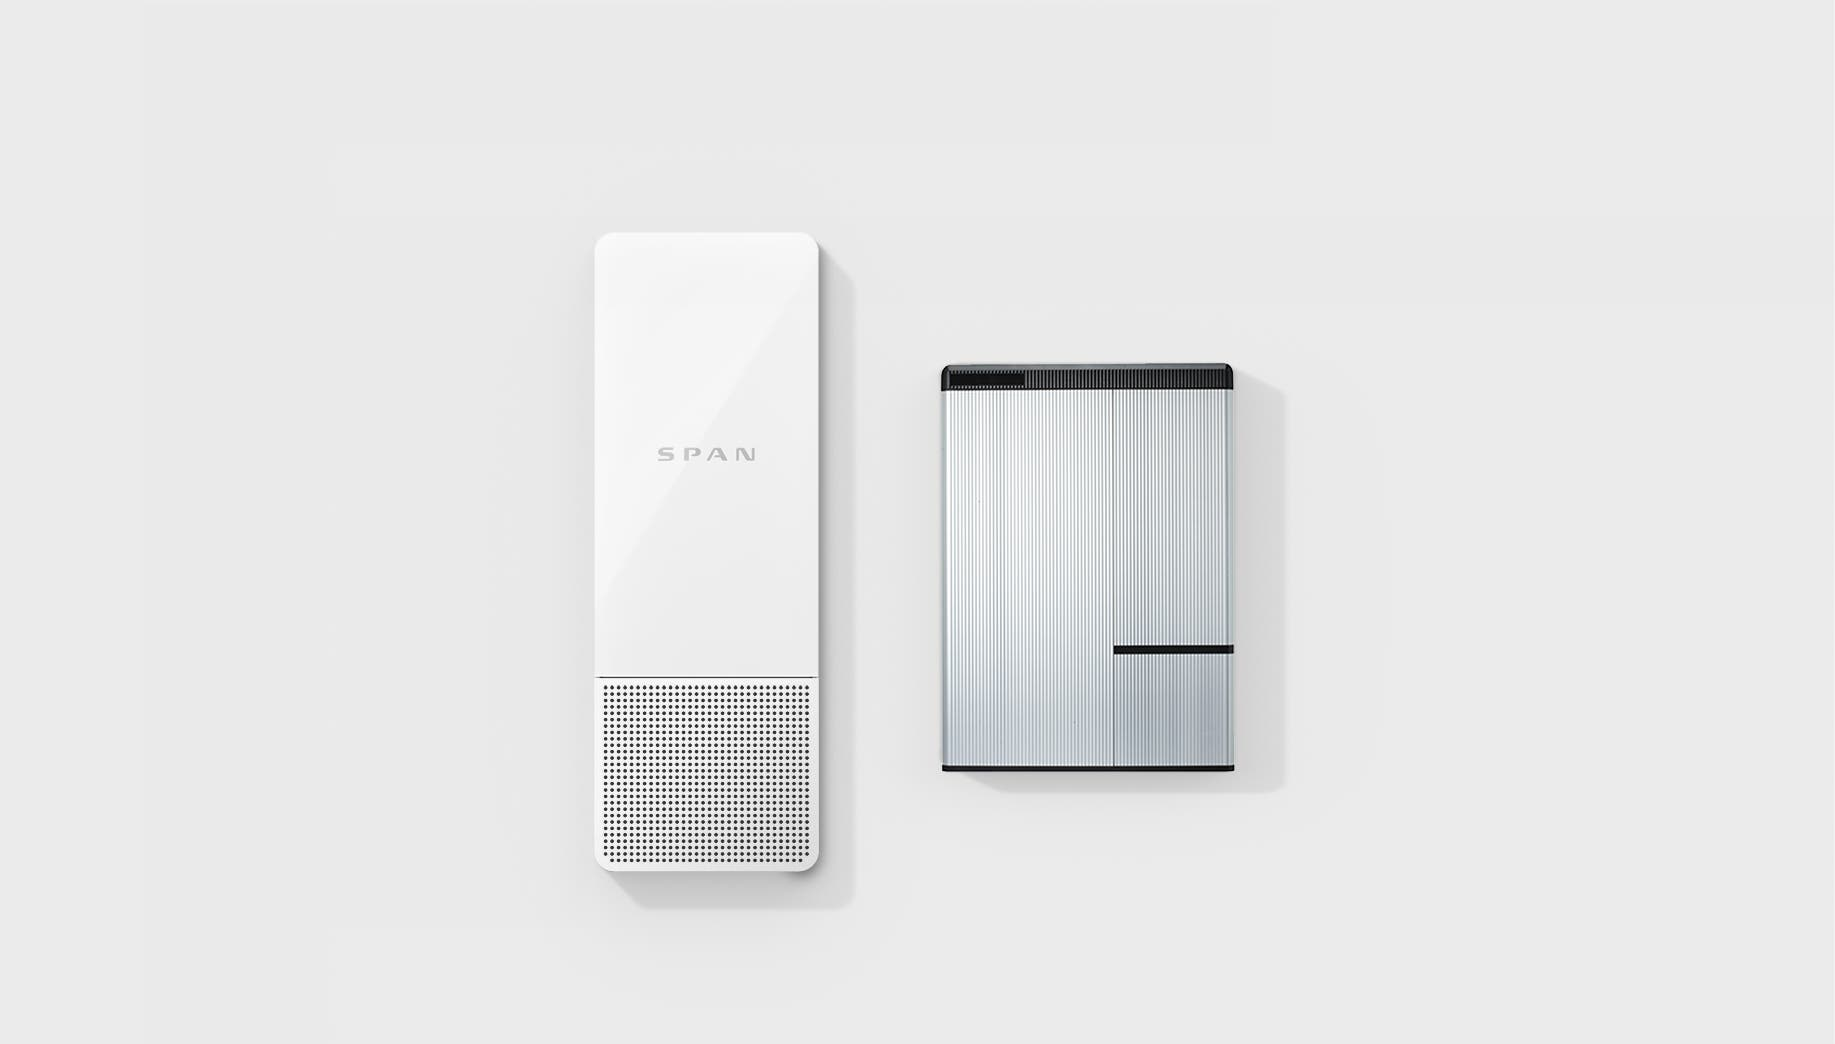 The Span Panel and the LG RESU Energy Storage system